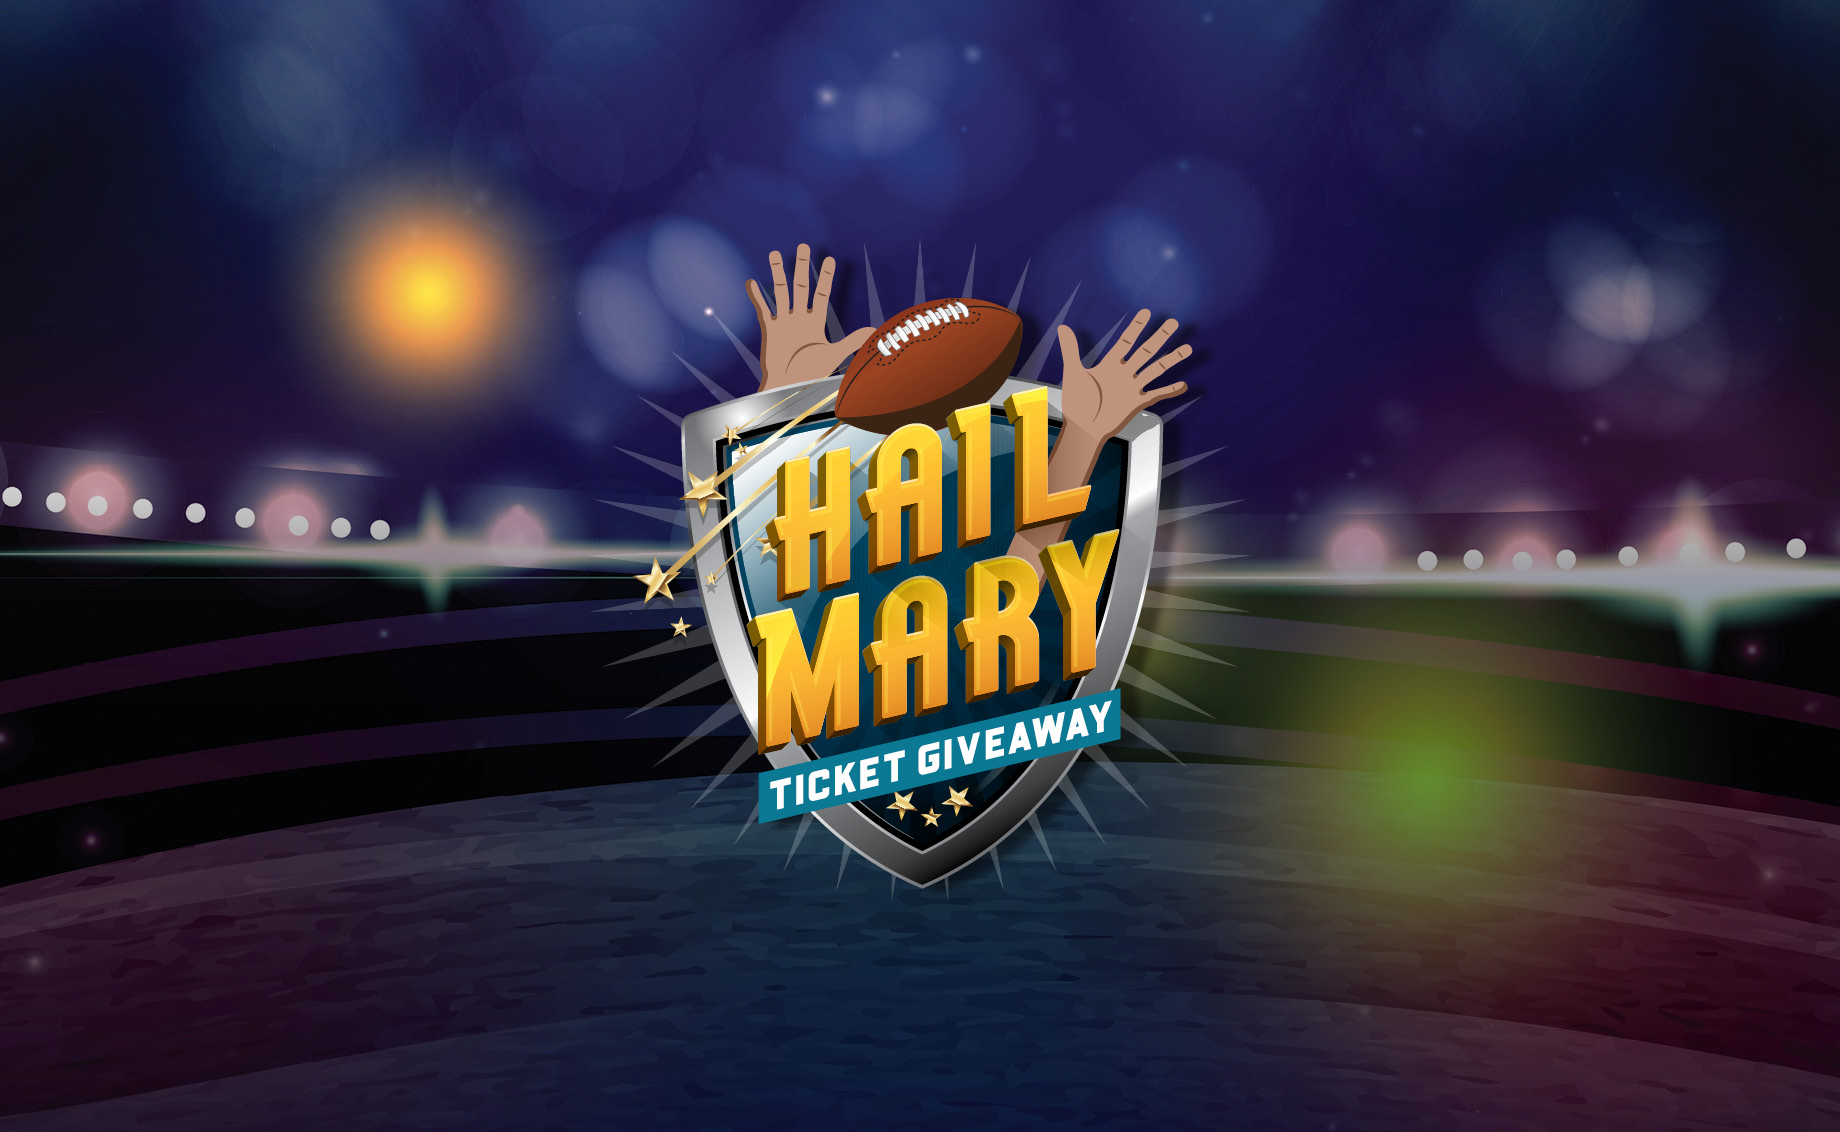 Hail Mary Ticket Giveaway